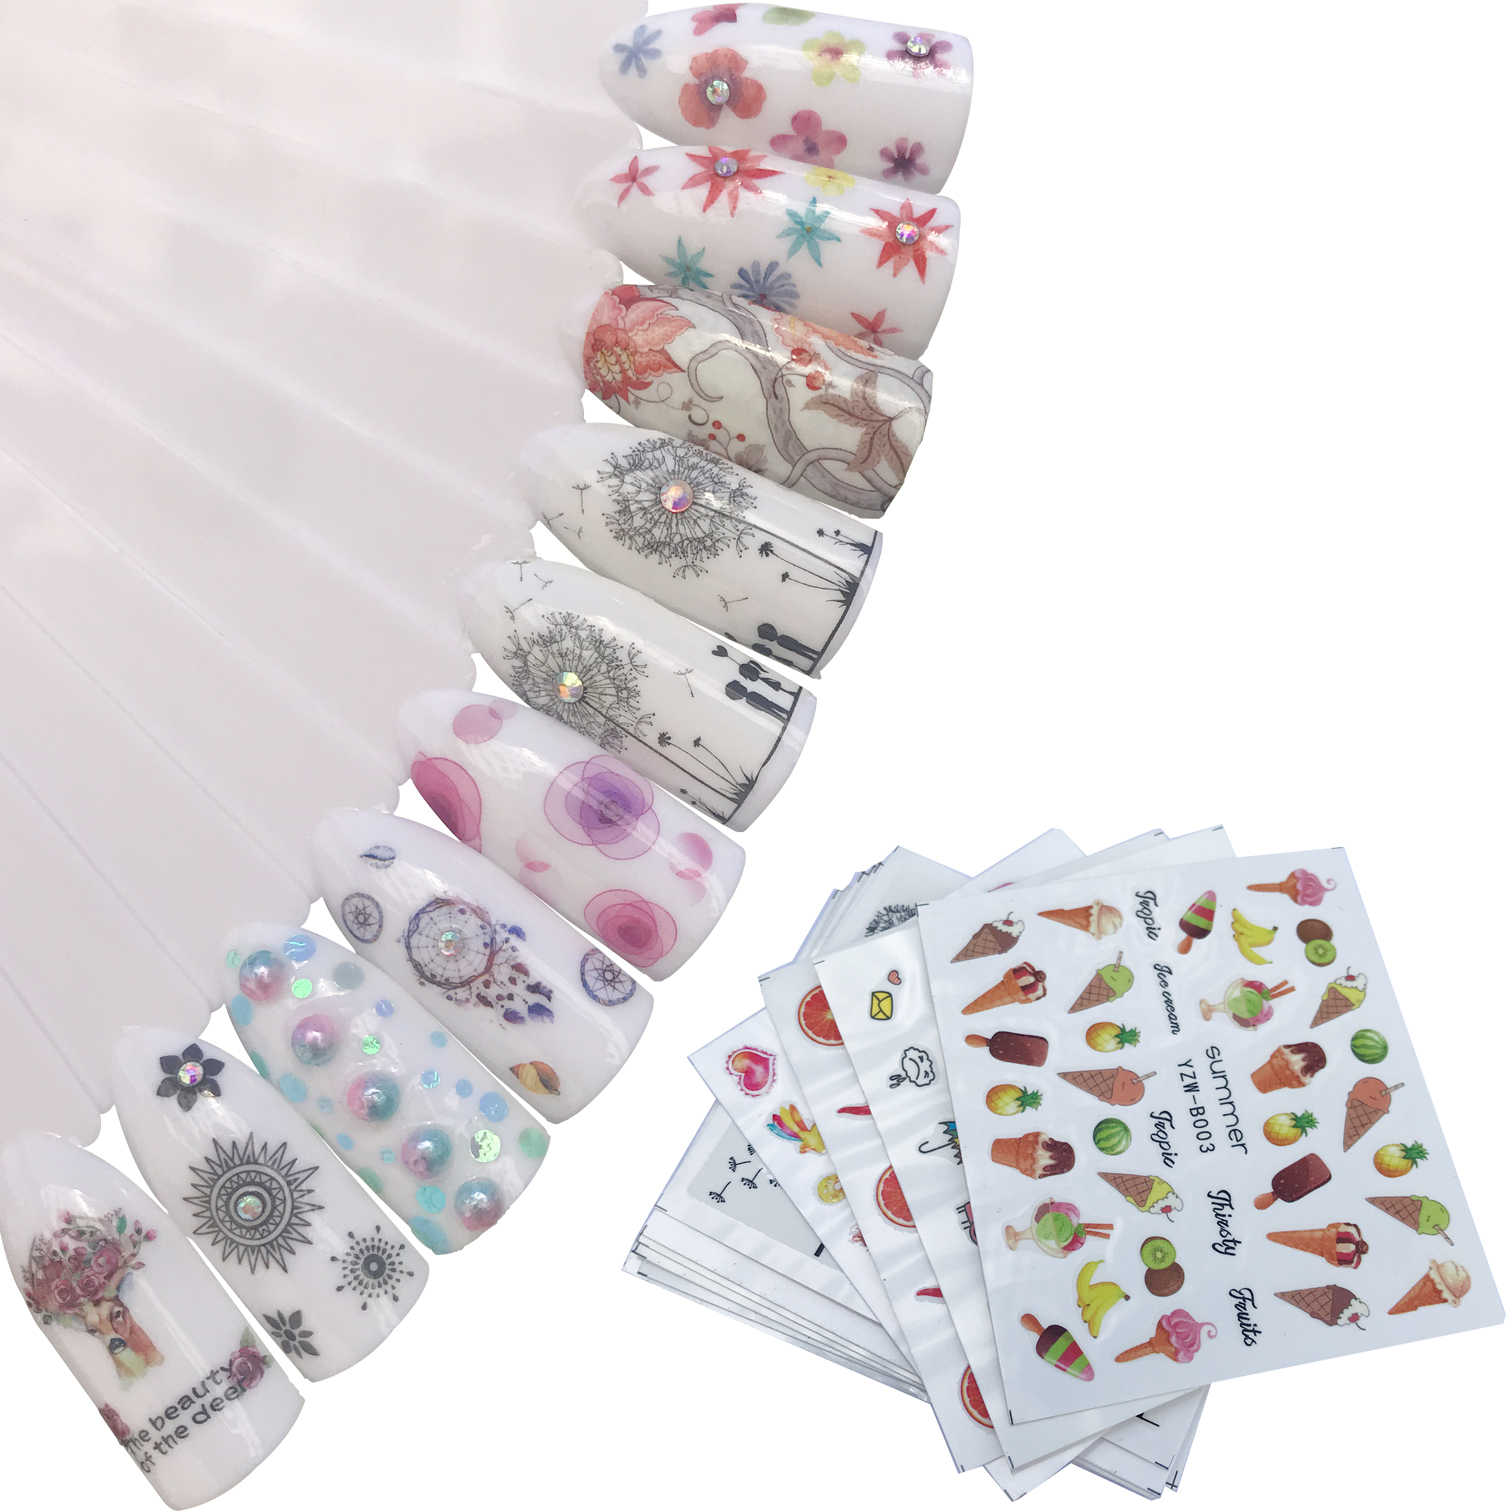 YZWLE 1 Sheet Dandelion Flower Strawberry Nail Decals for Watermark Manicure Polish Nail Sticker 10 Styles for Choose